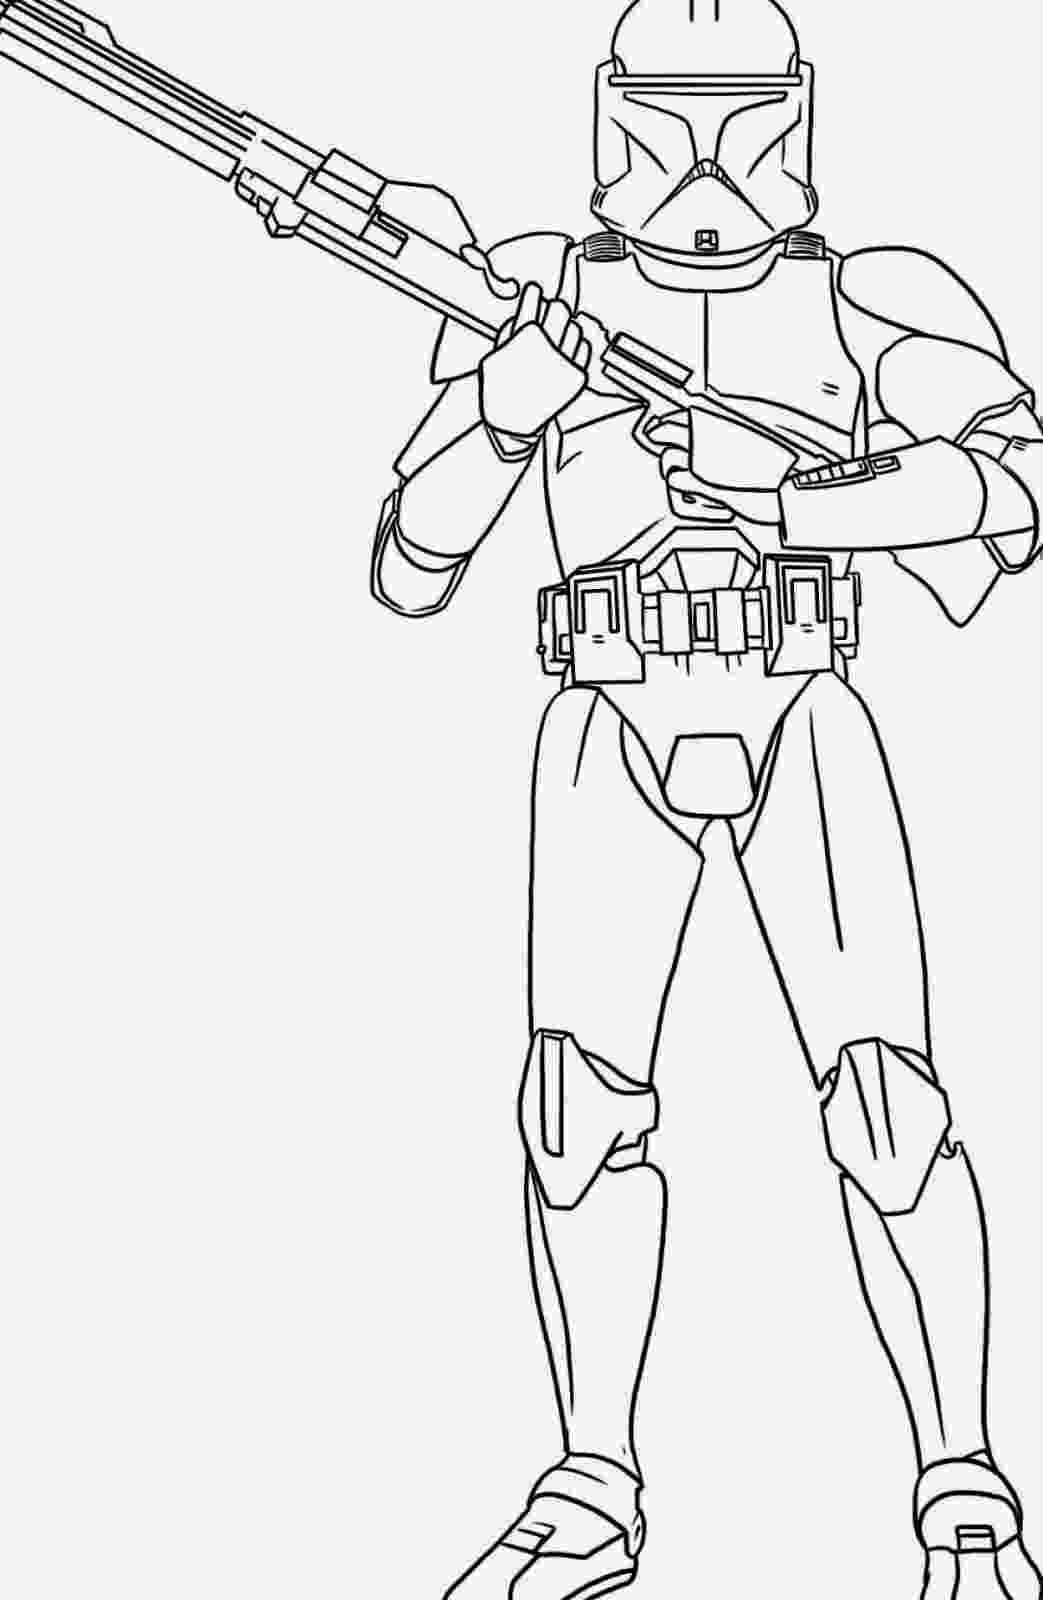 star wars characters coloring pages coloring pages for boys 2018 dr odd star pages characters wars coloring